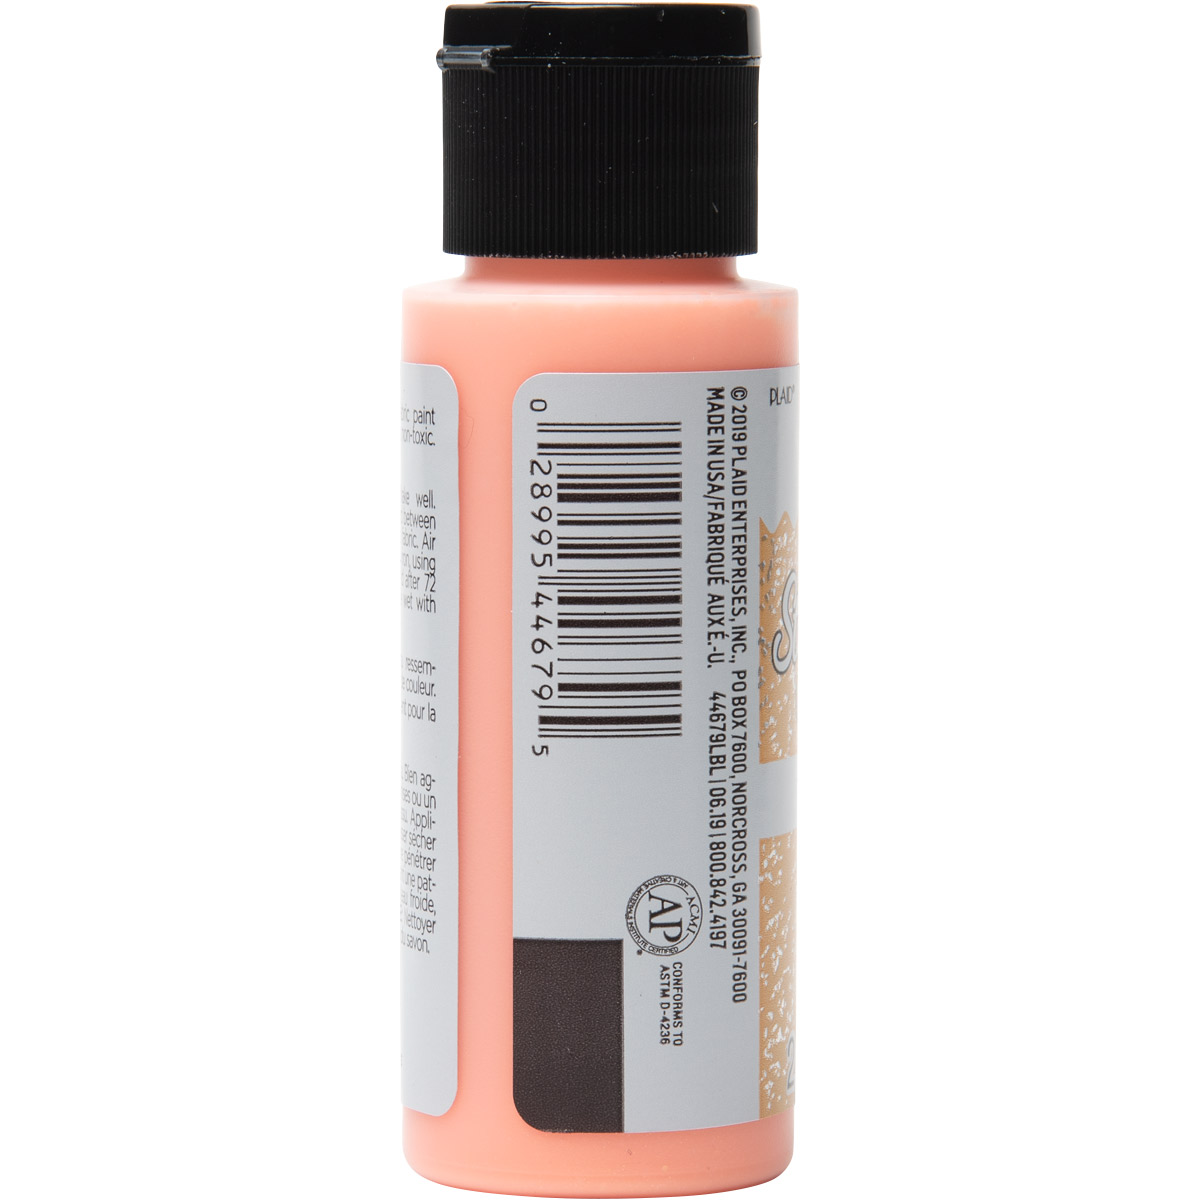 Fabric Creations™ StarStruck Glitter™ Fabric Paint - Mango Ice, 2 oz. - 44679